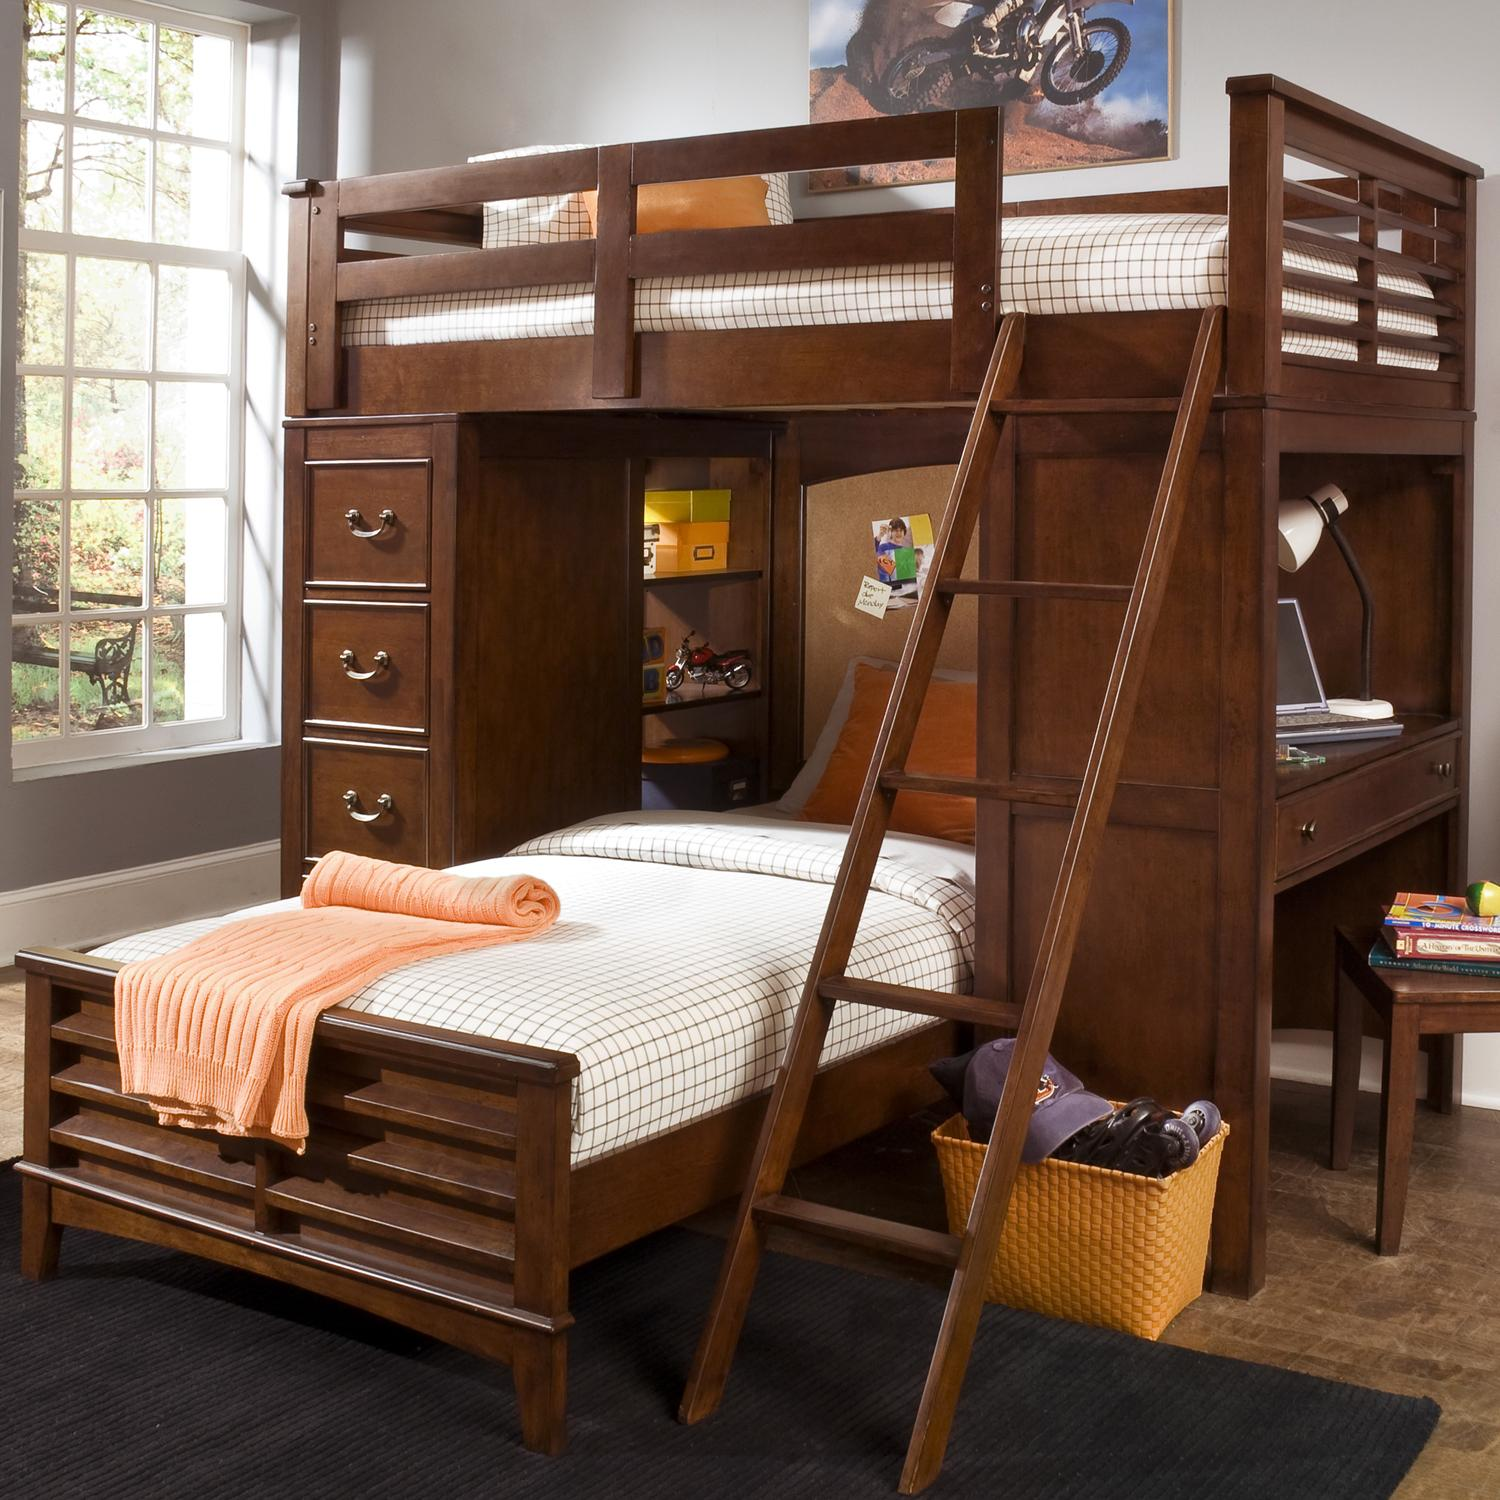 frame elegant dresser steps wood the dressers size beds features dark drawers stained desk in loft bunk bed and this built fresh full with